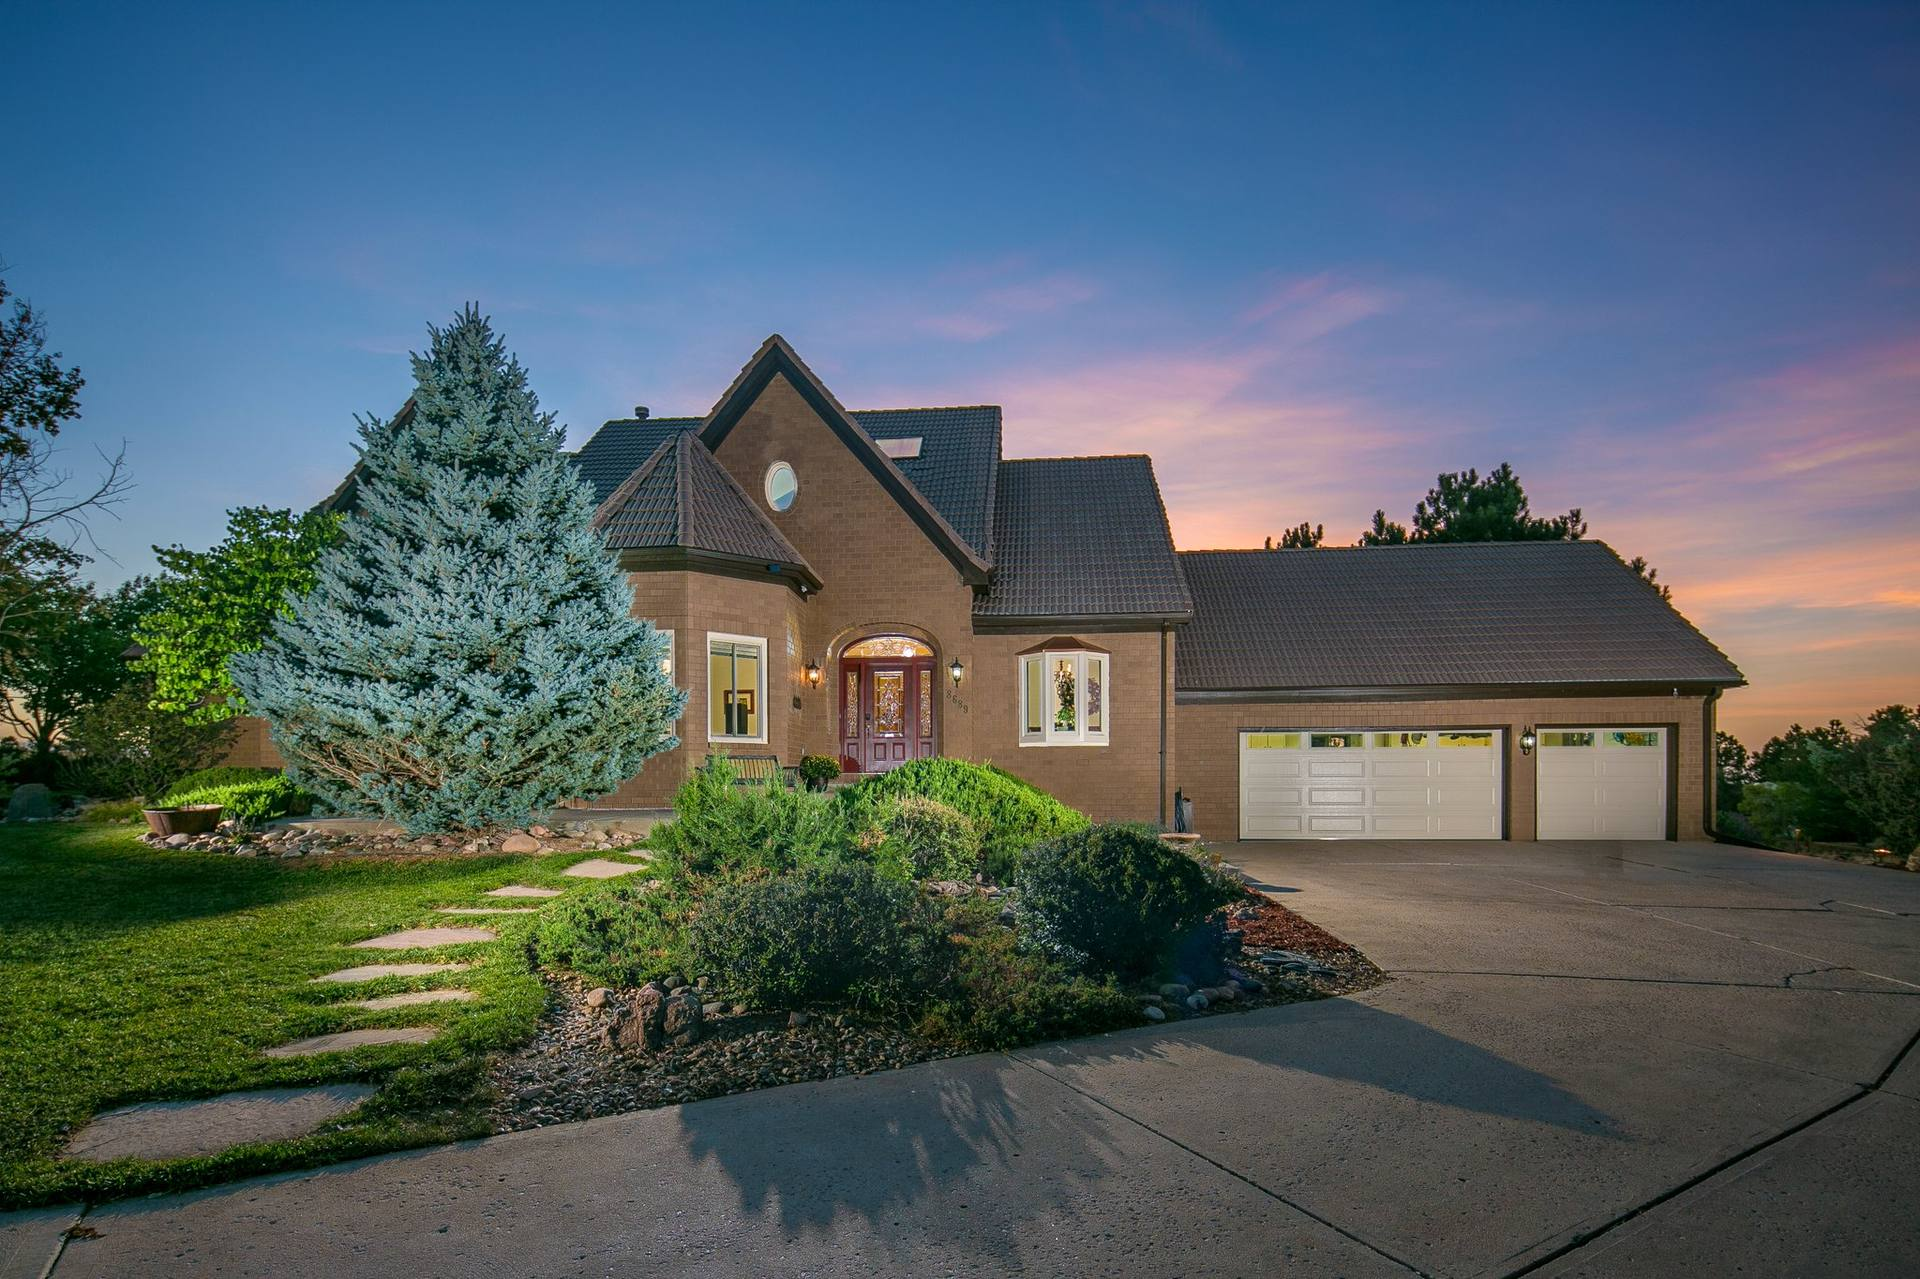 8689 Selly Rd, Parker, CO 80134, USA